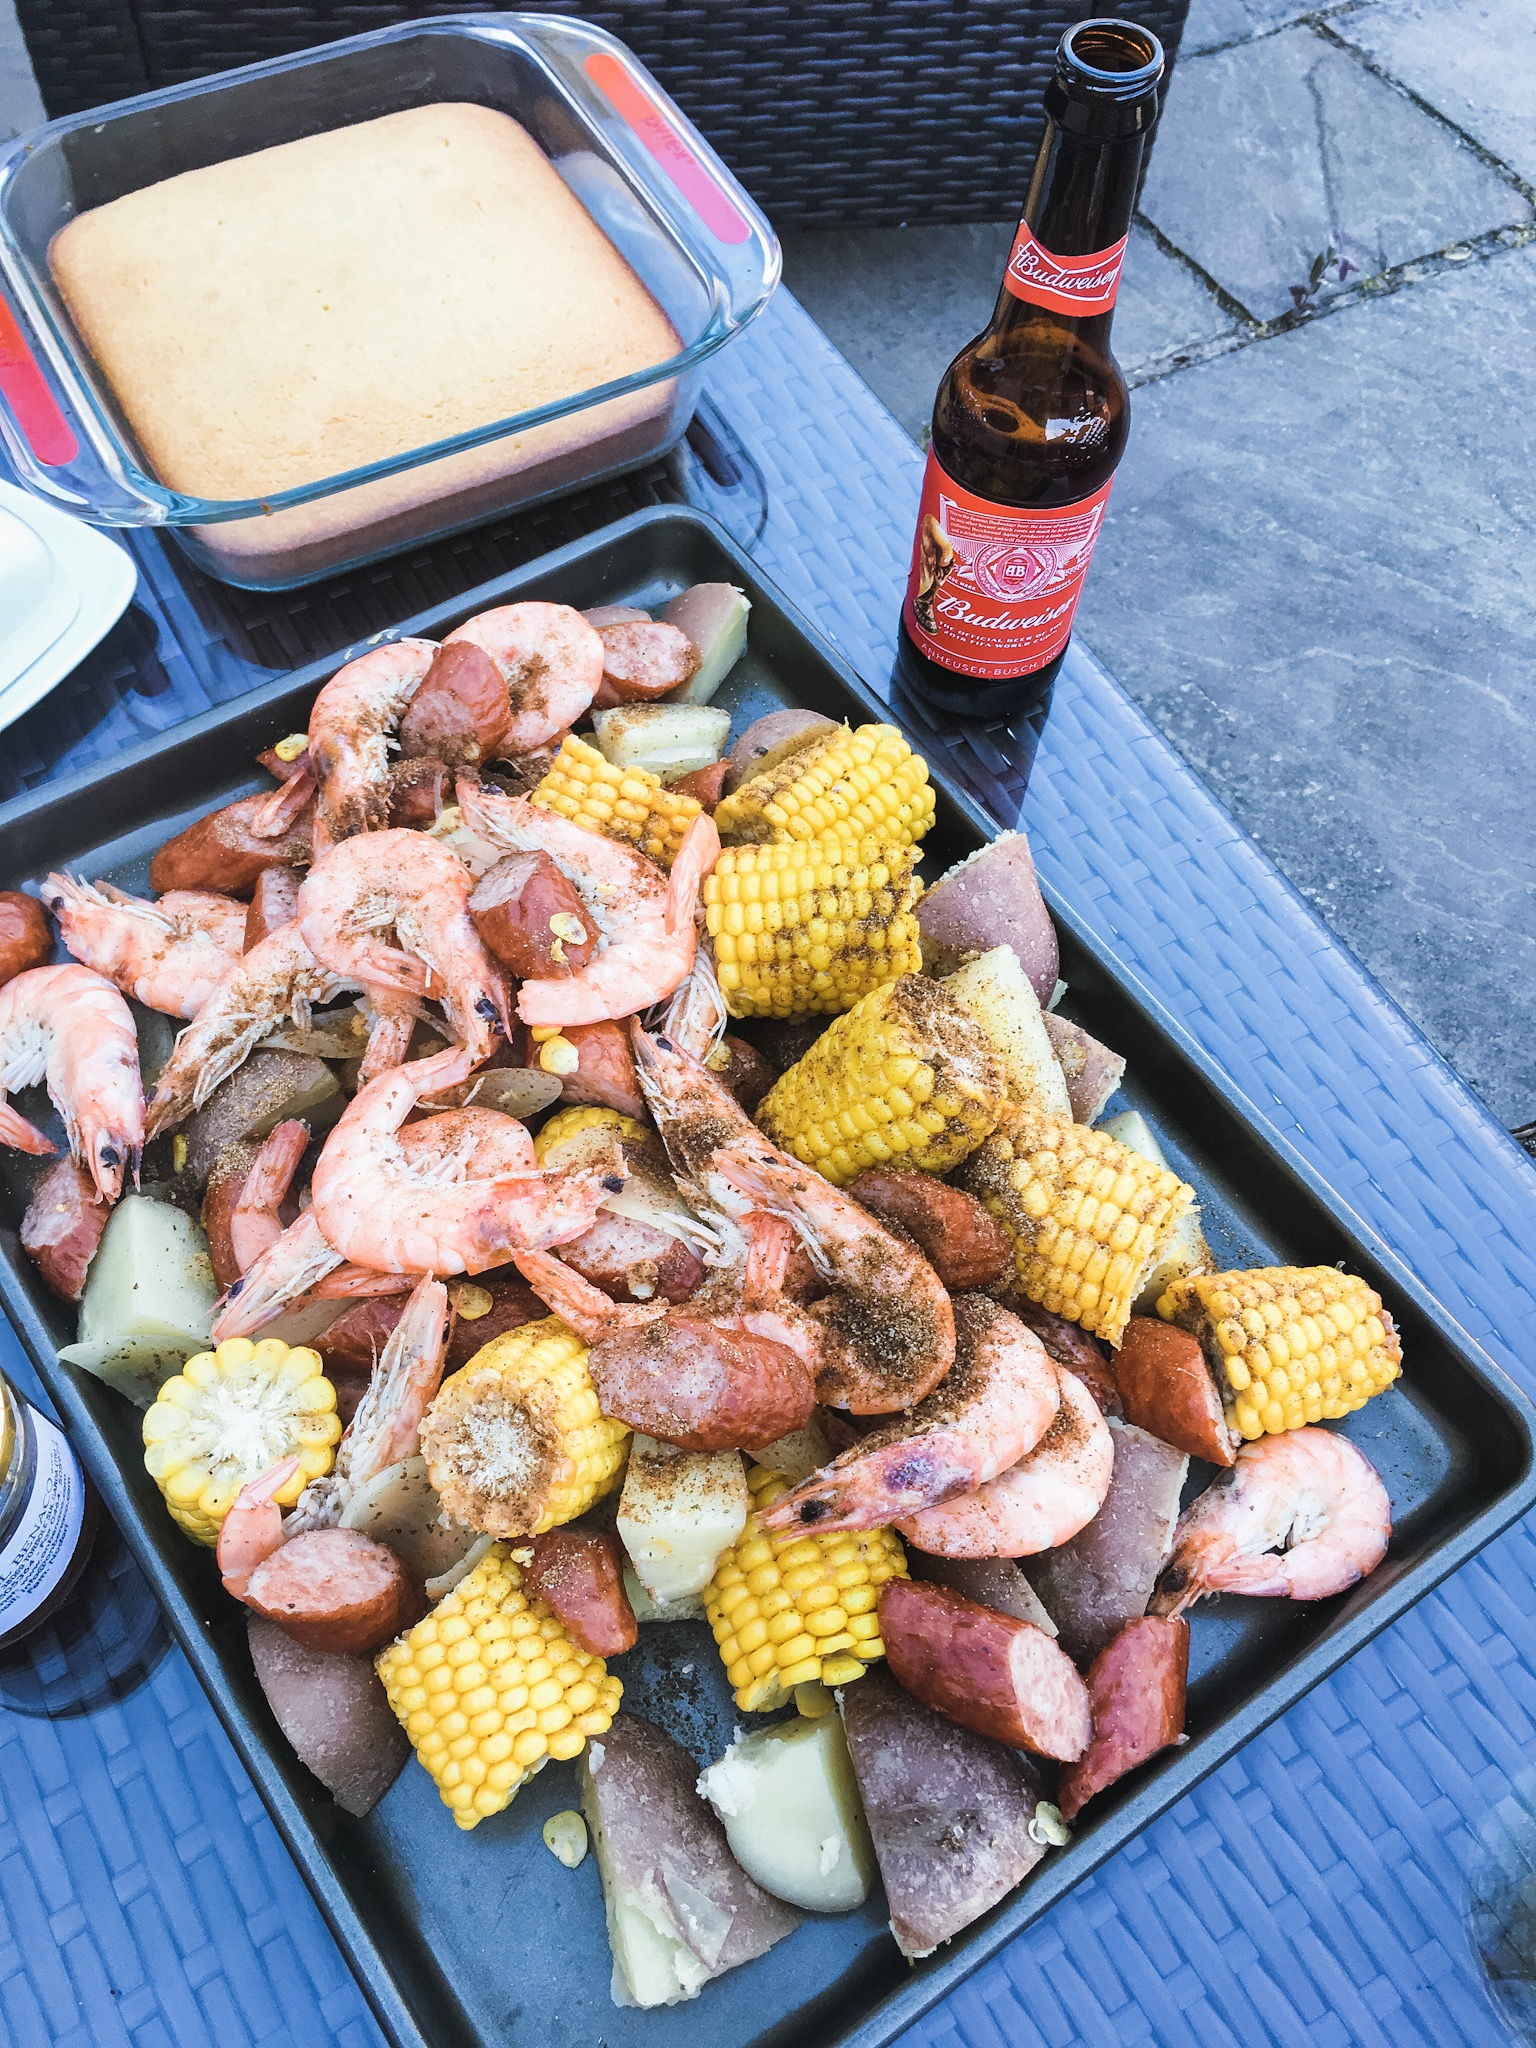 American Style Shrimp Boil - An amazing meal that brings people together with minimal clean up!